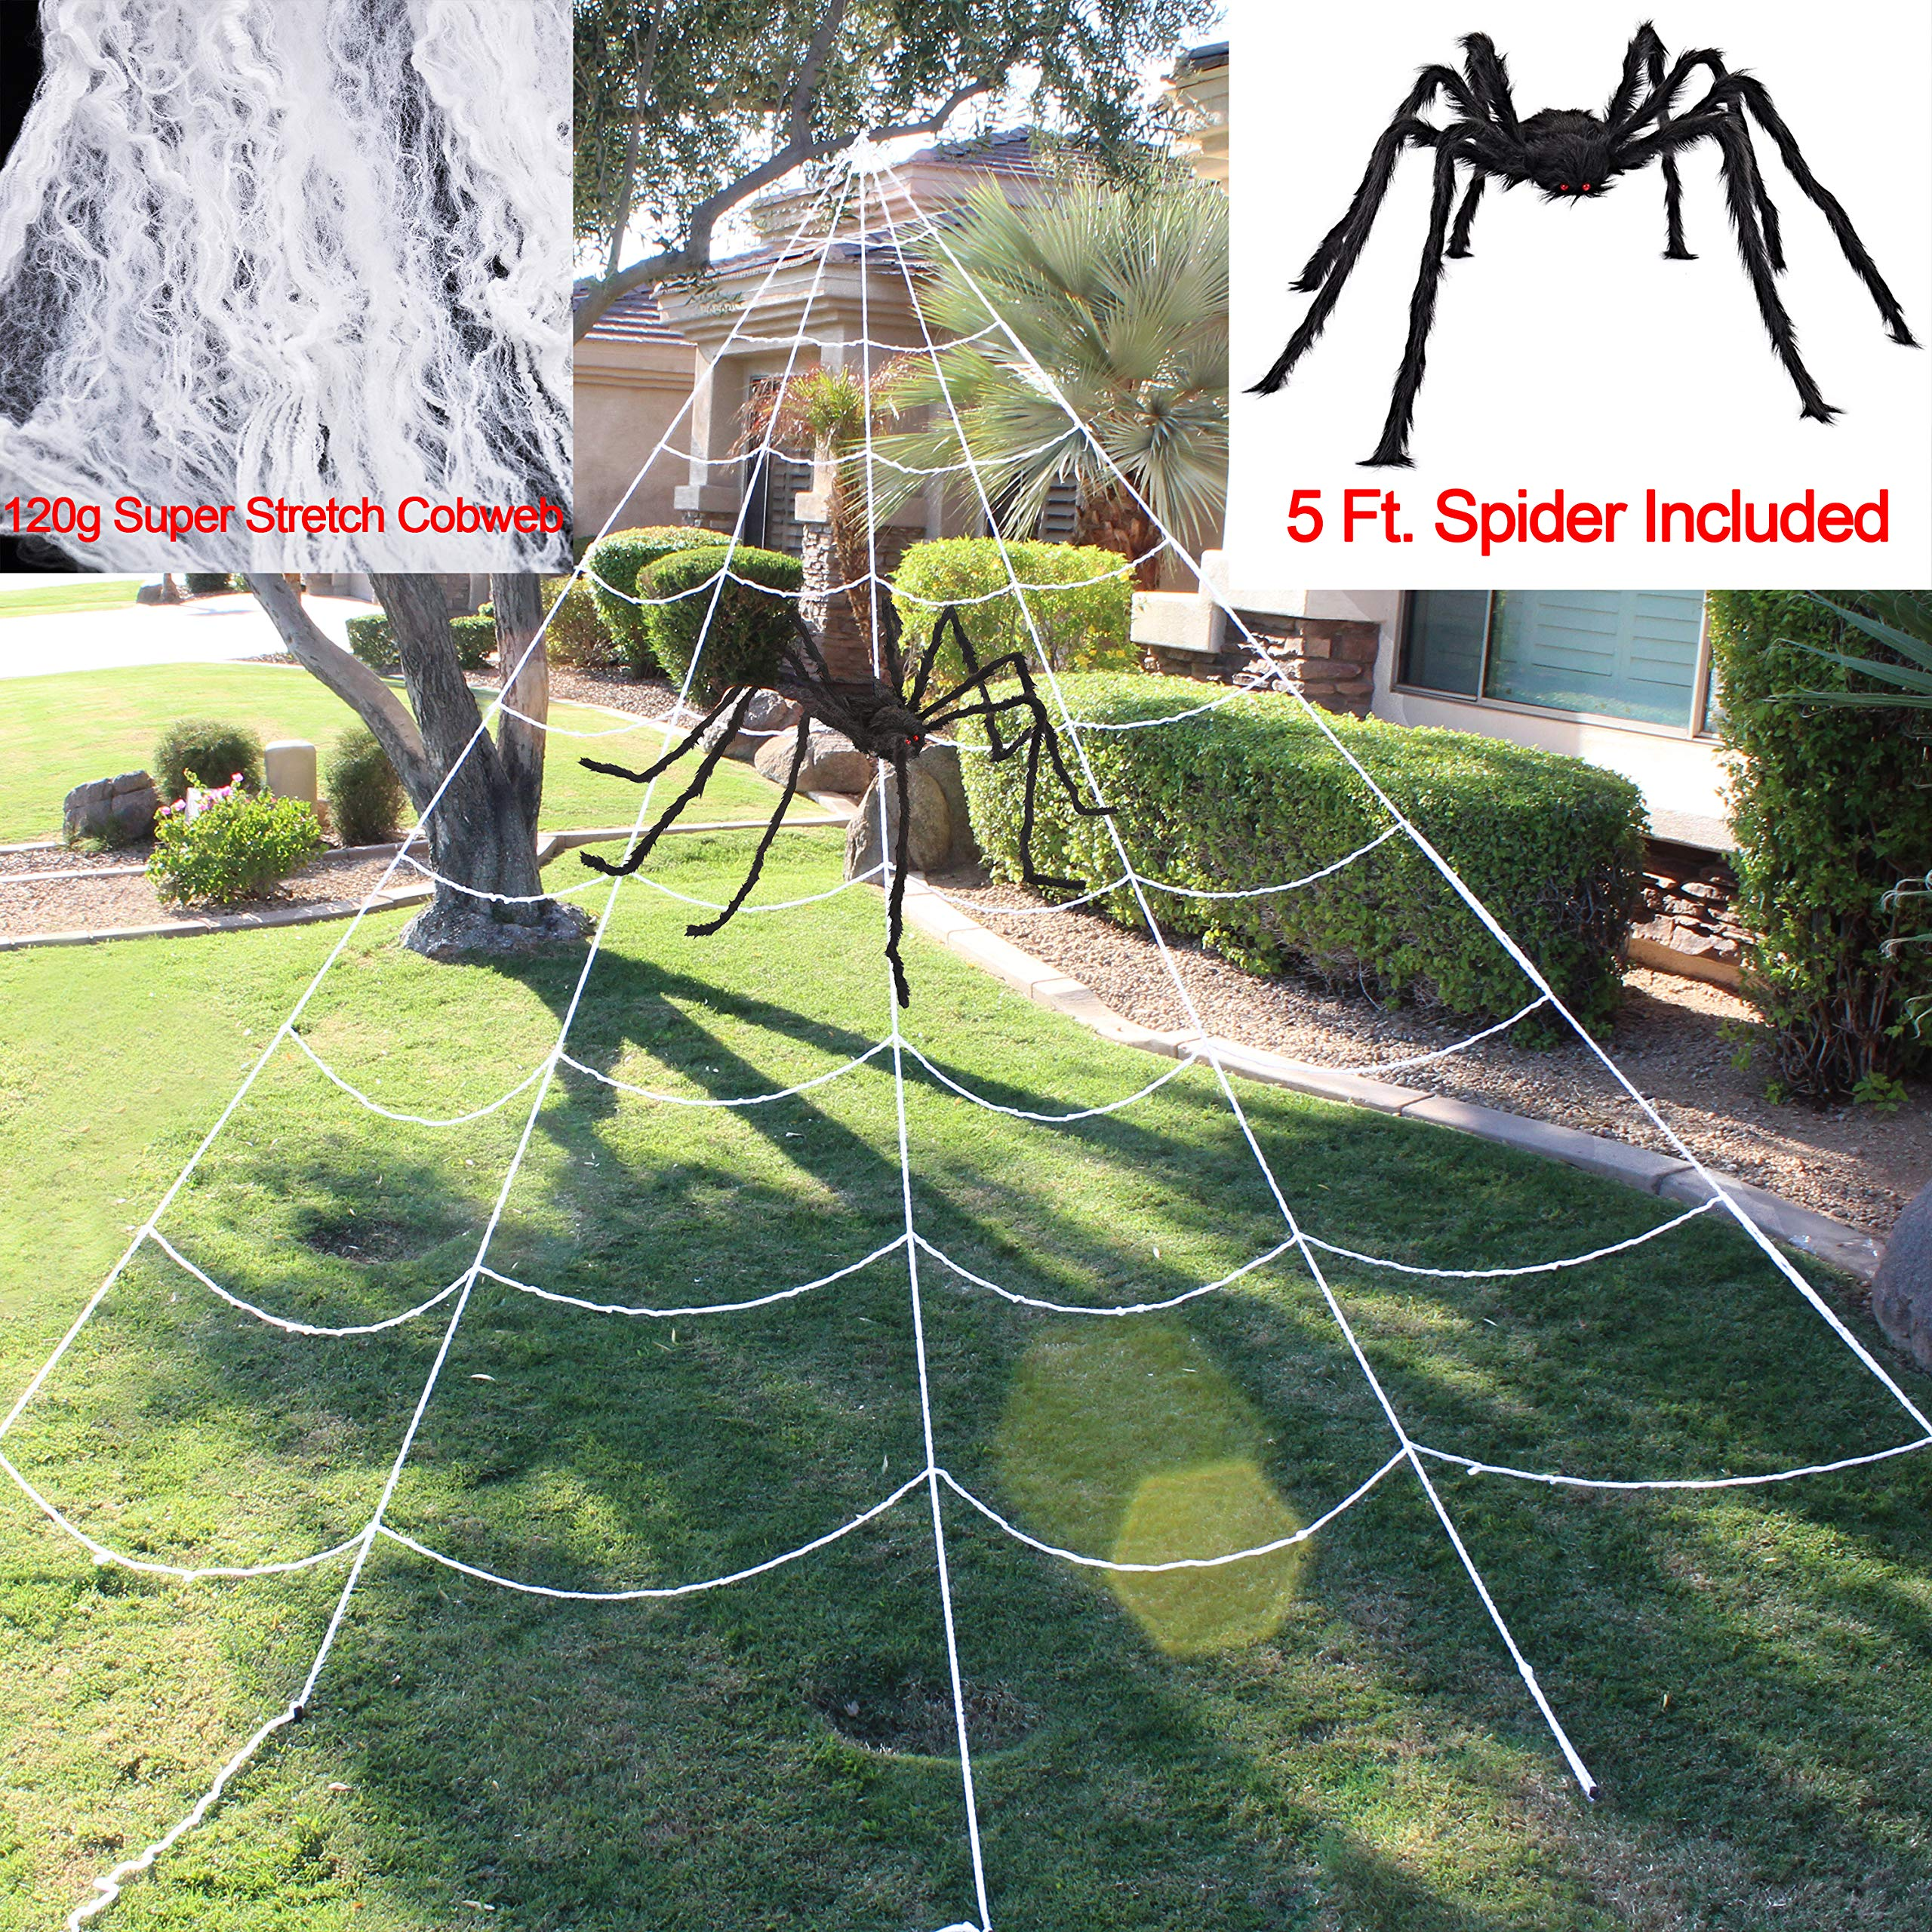 Halloween Giant Spider Web Set Includes 5 ft Spider, 23 x 18 ft Large Web and 120g Stretch Cobweb for Halloween Outdoor Decorations by JOYIN